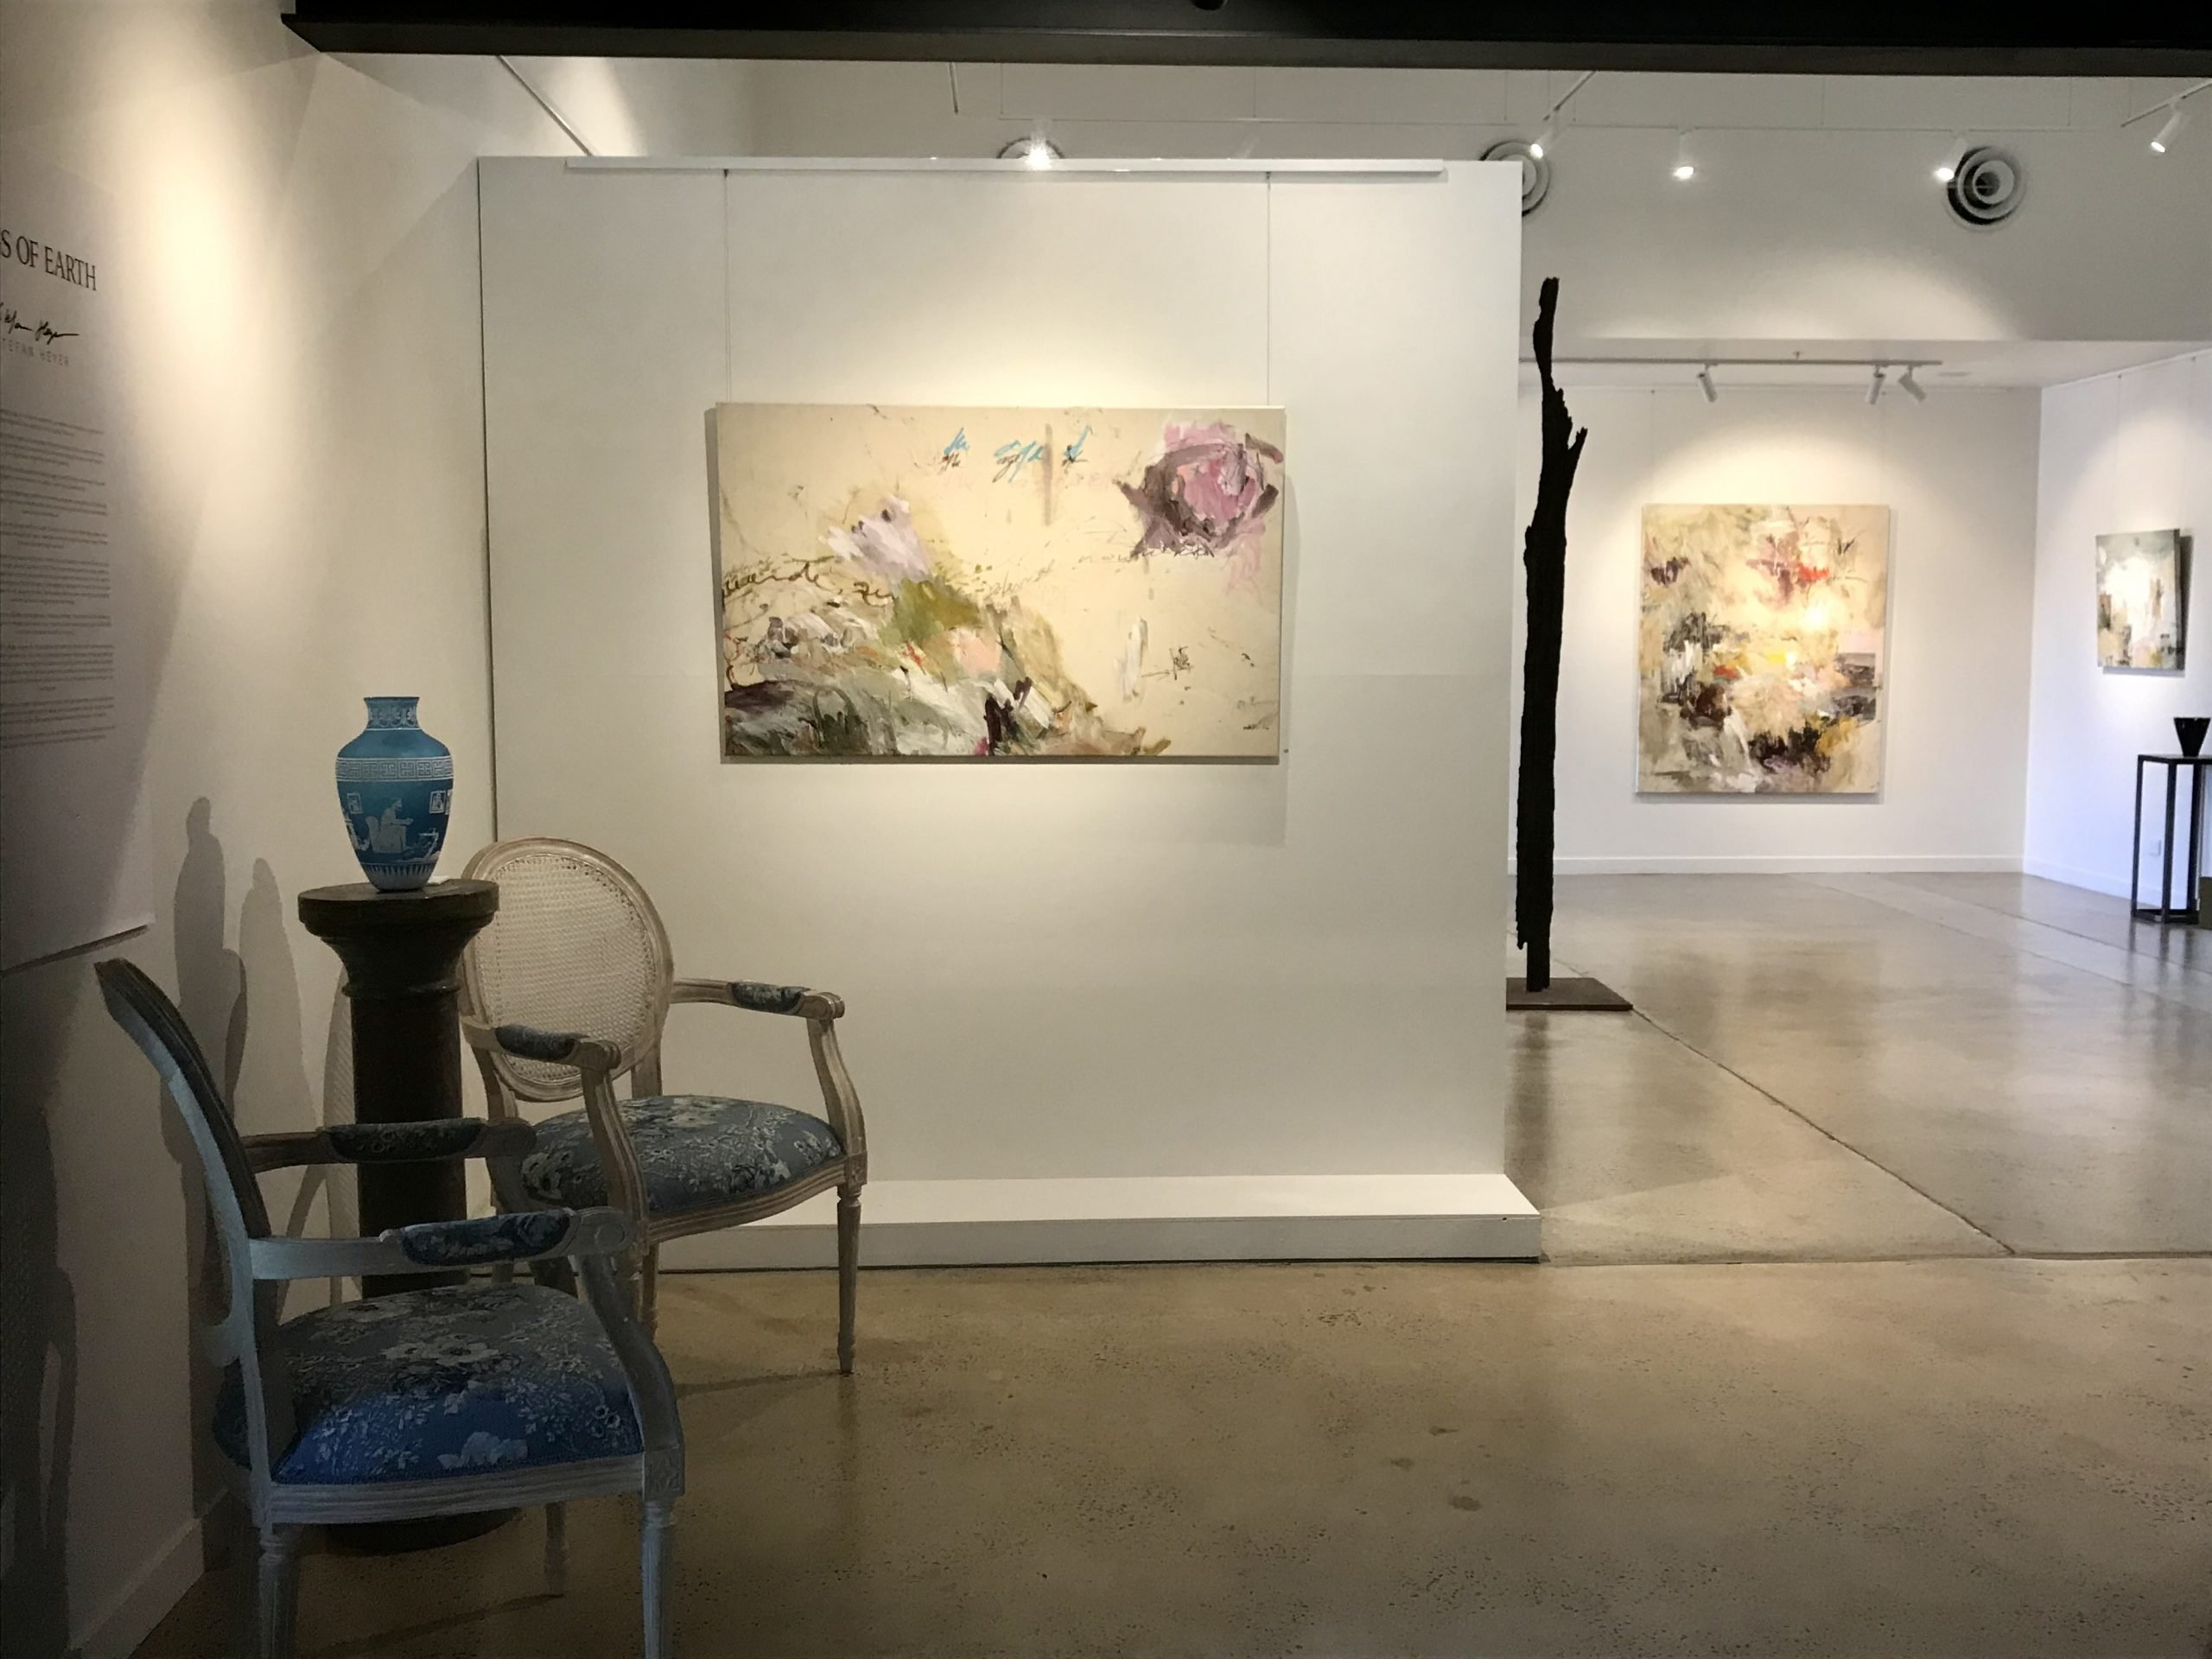 Photograph of Grainger Gallery in the new arts precinct at Dairy Flat Road